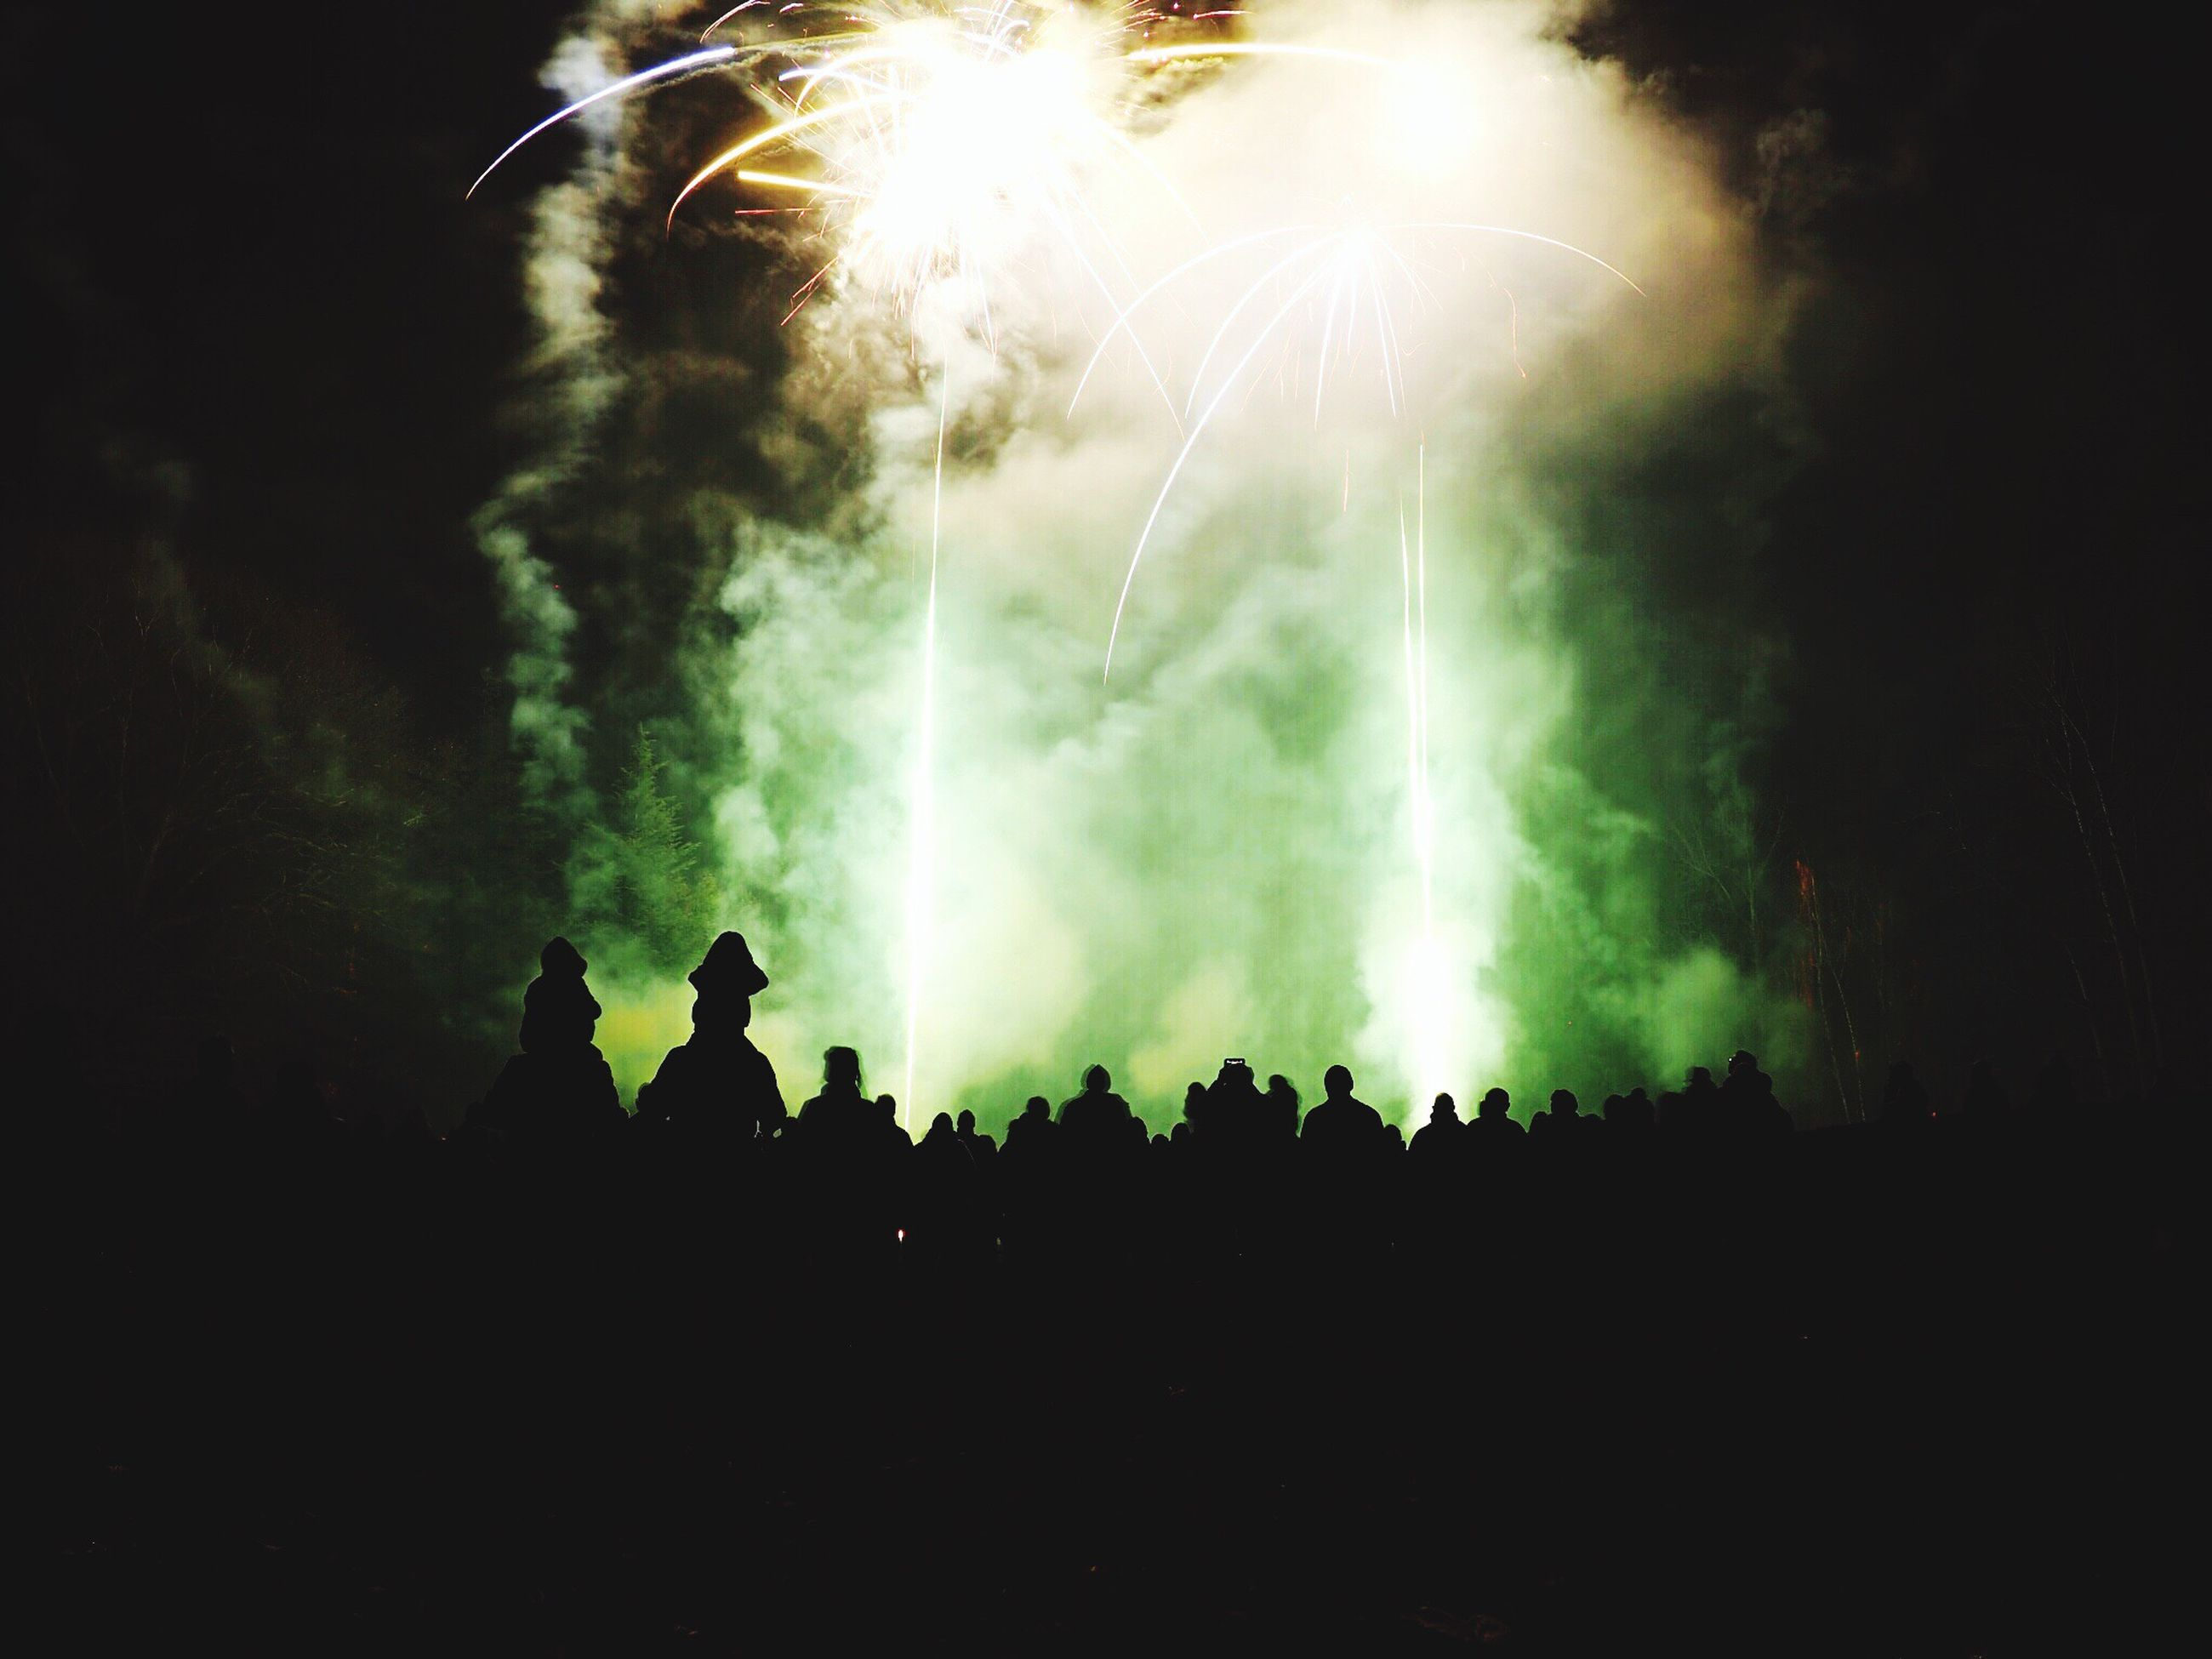 night, arts culture and entertainment, men, event, silhouette, illuminated, lifestyles, fire - natural phenomenon, leisure activity, smoke - physical structure, glowing, sparks, burning, firework display, enjoyment, celebration, large group of people, light - natural phenomenon, motion